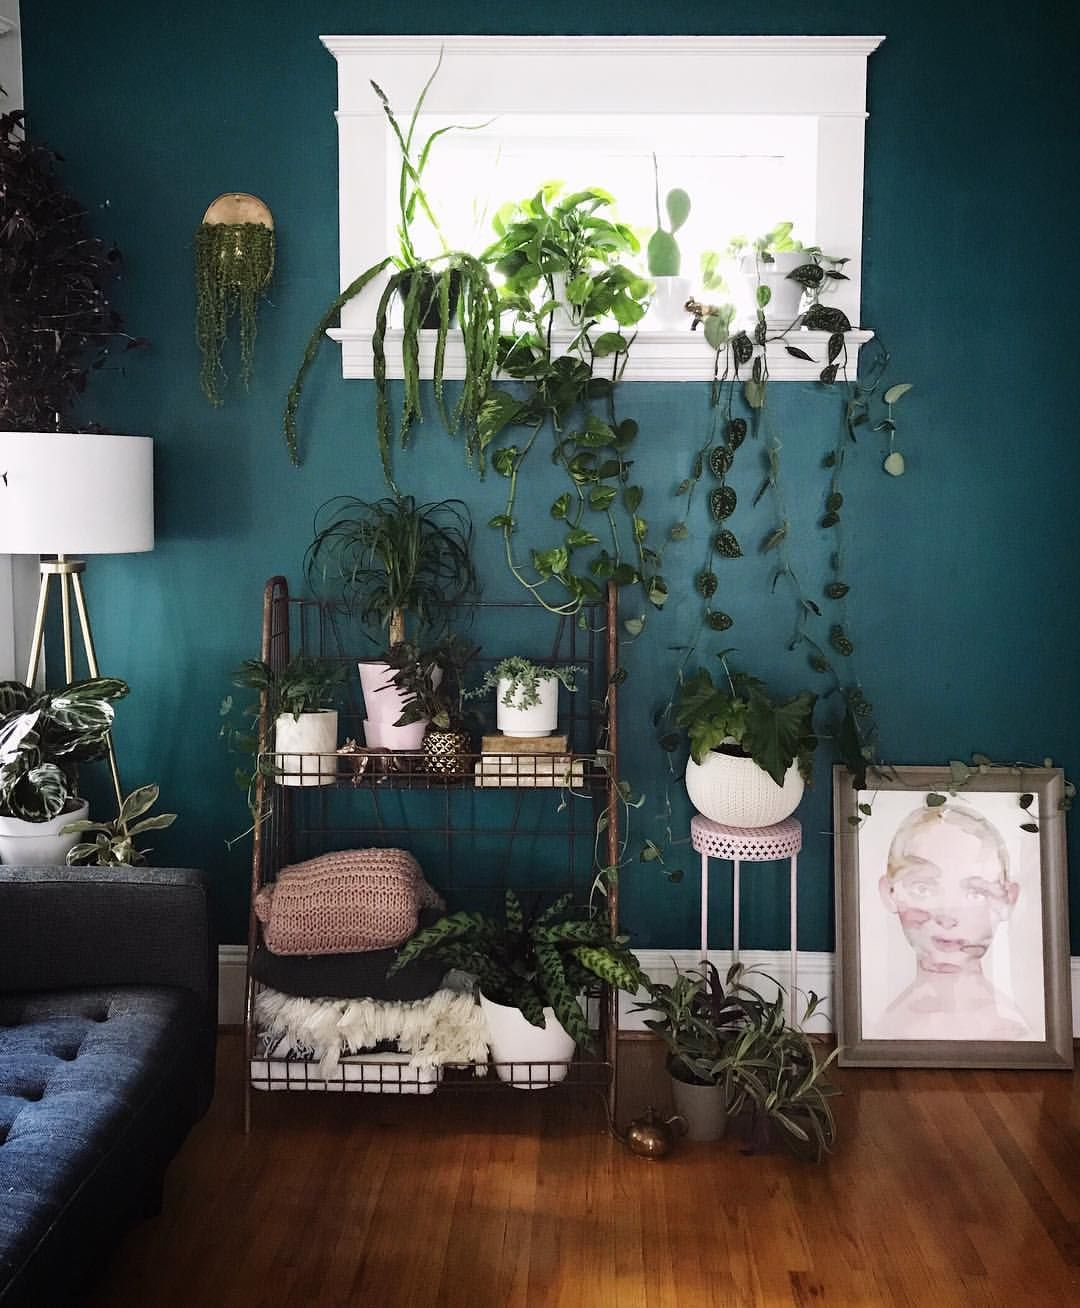 Emerald Accent Wall : emerald, accent, Paint, Color, Verdant, Forest., Dining, Color!, Perfect, Emerald, Green., Colors,, Green, Accent, Walls